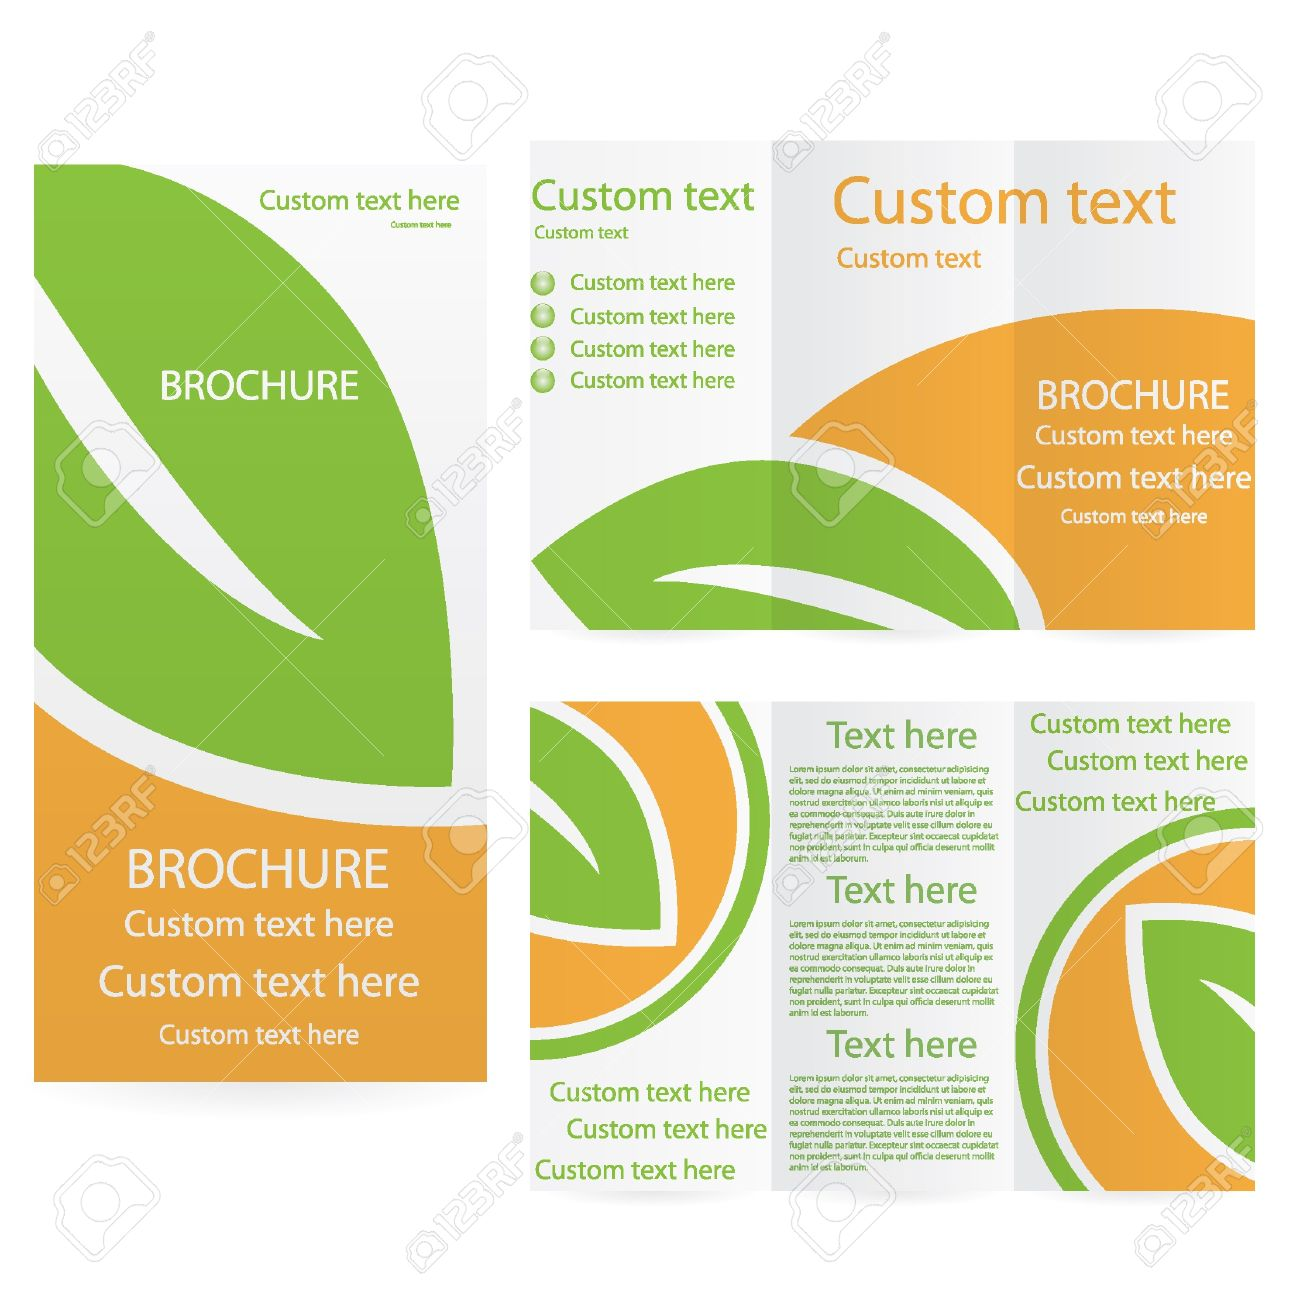 Vector Brochure Layout Design Template Green Orange Environmental - Custom brochure templates